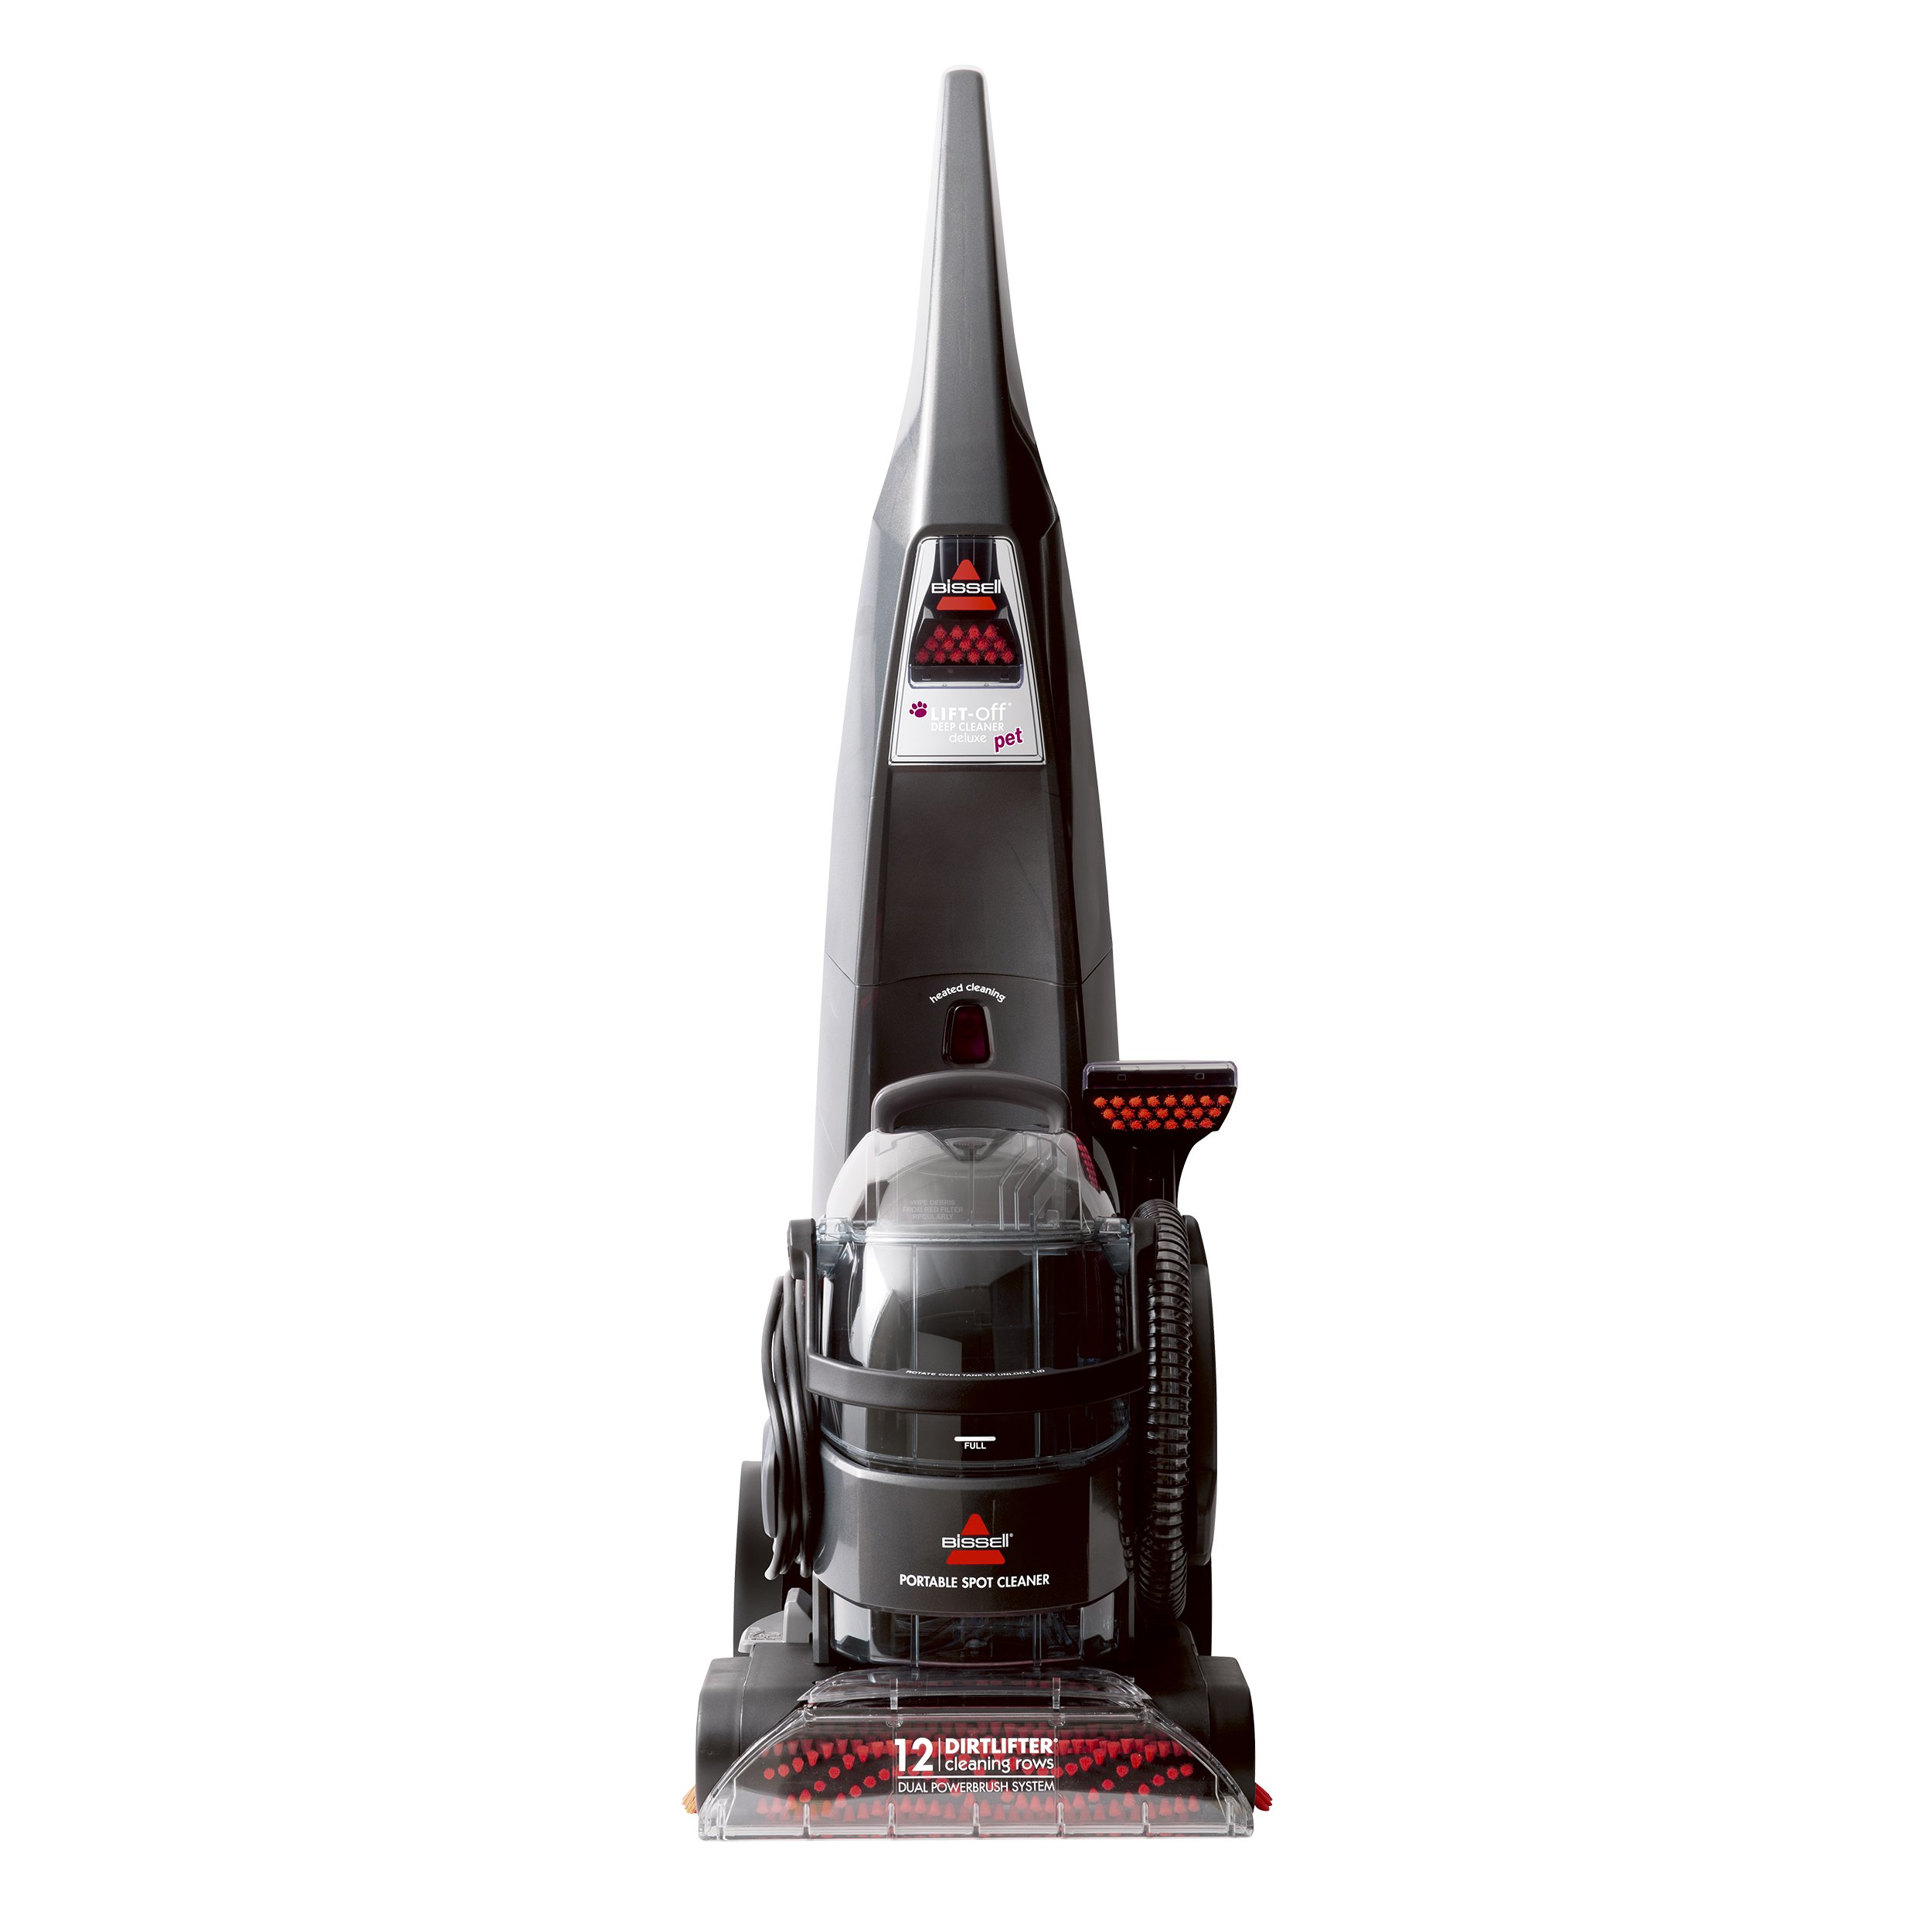 Details about BISSELL DeepClean Lift-Off Deluxe Upright Pet Carpet Cleaner Machine, 24A4